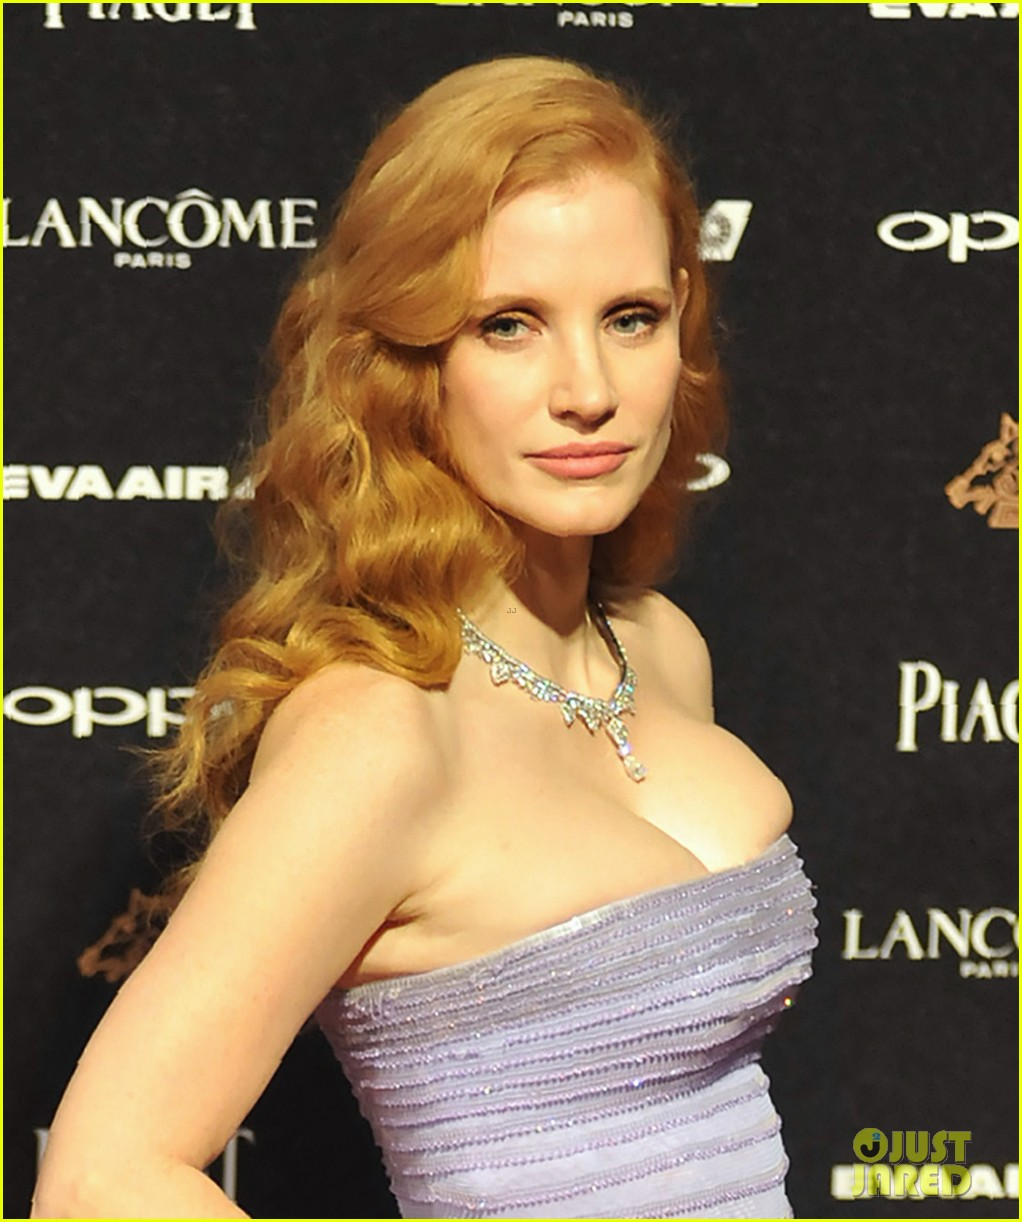 Photos Jessica Chastain nudes (55 photo), Pussy, Leaked, Twitter, butt 2020